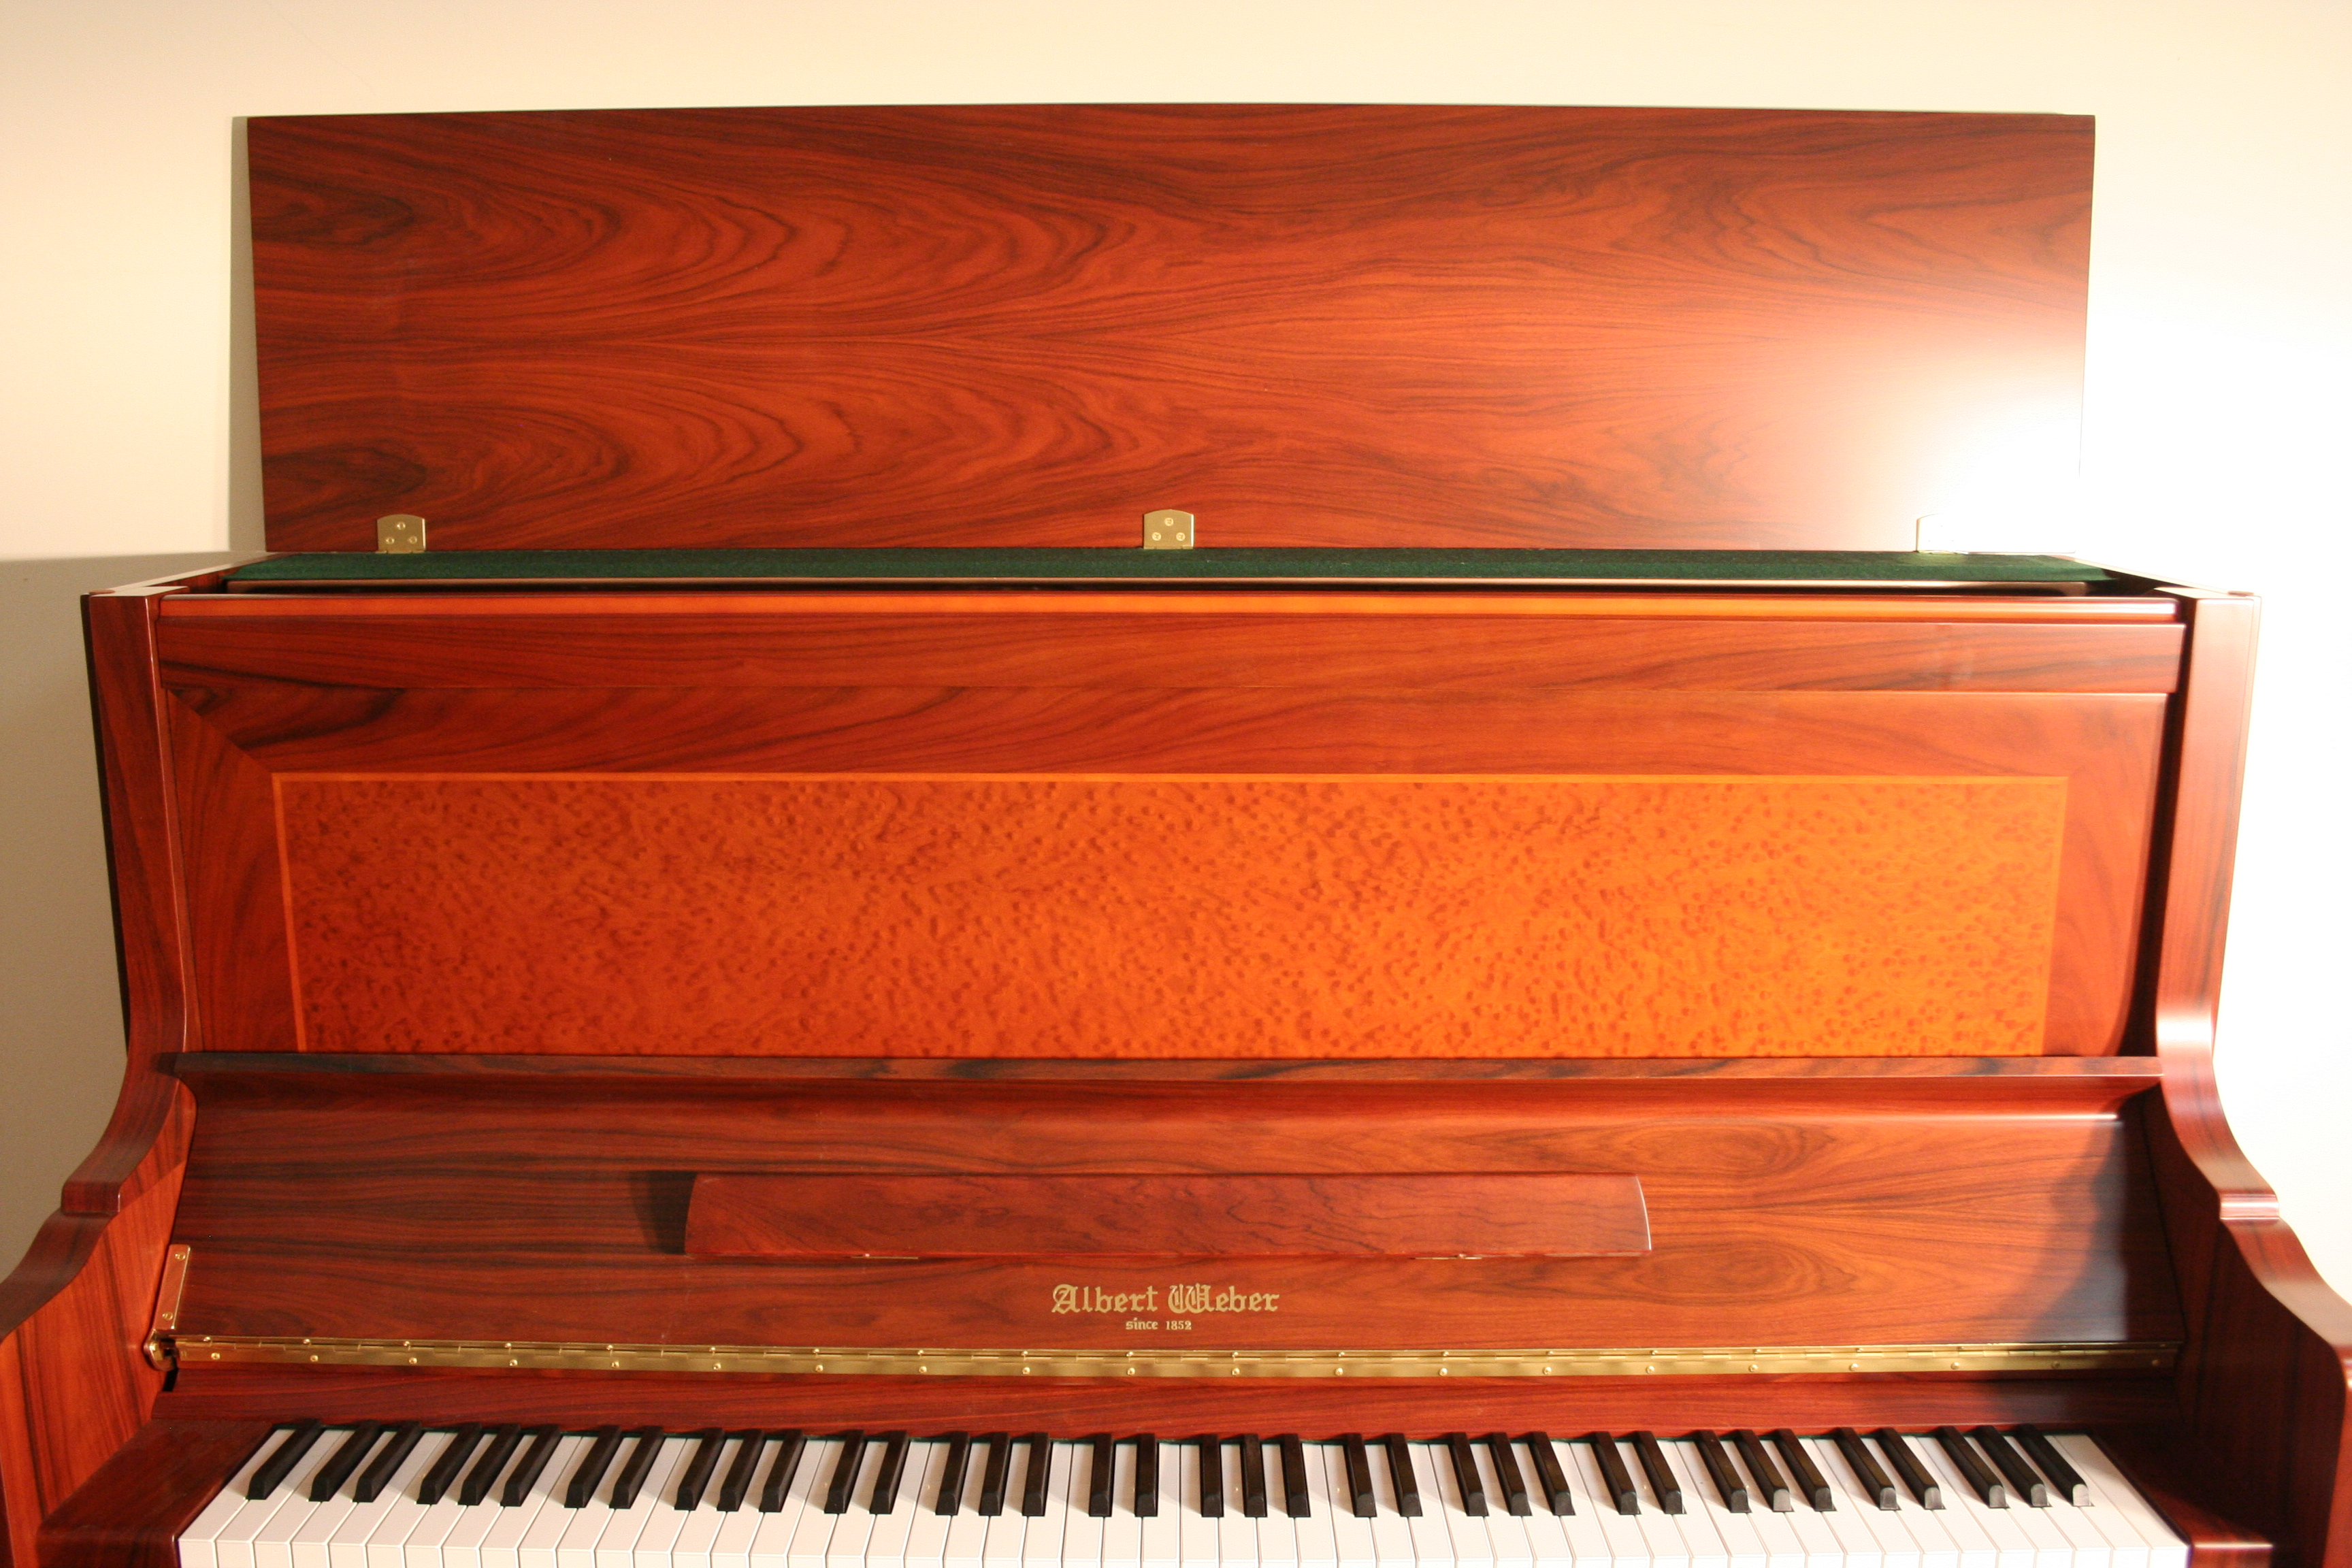 First Place Prize  For Sonny's 'Win A Free Piano' Contest Starting June 7th. New Albert Weber Upright 51 inches, Rosewood,   $8500.